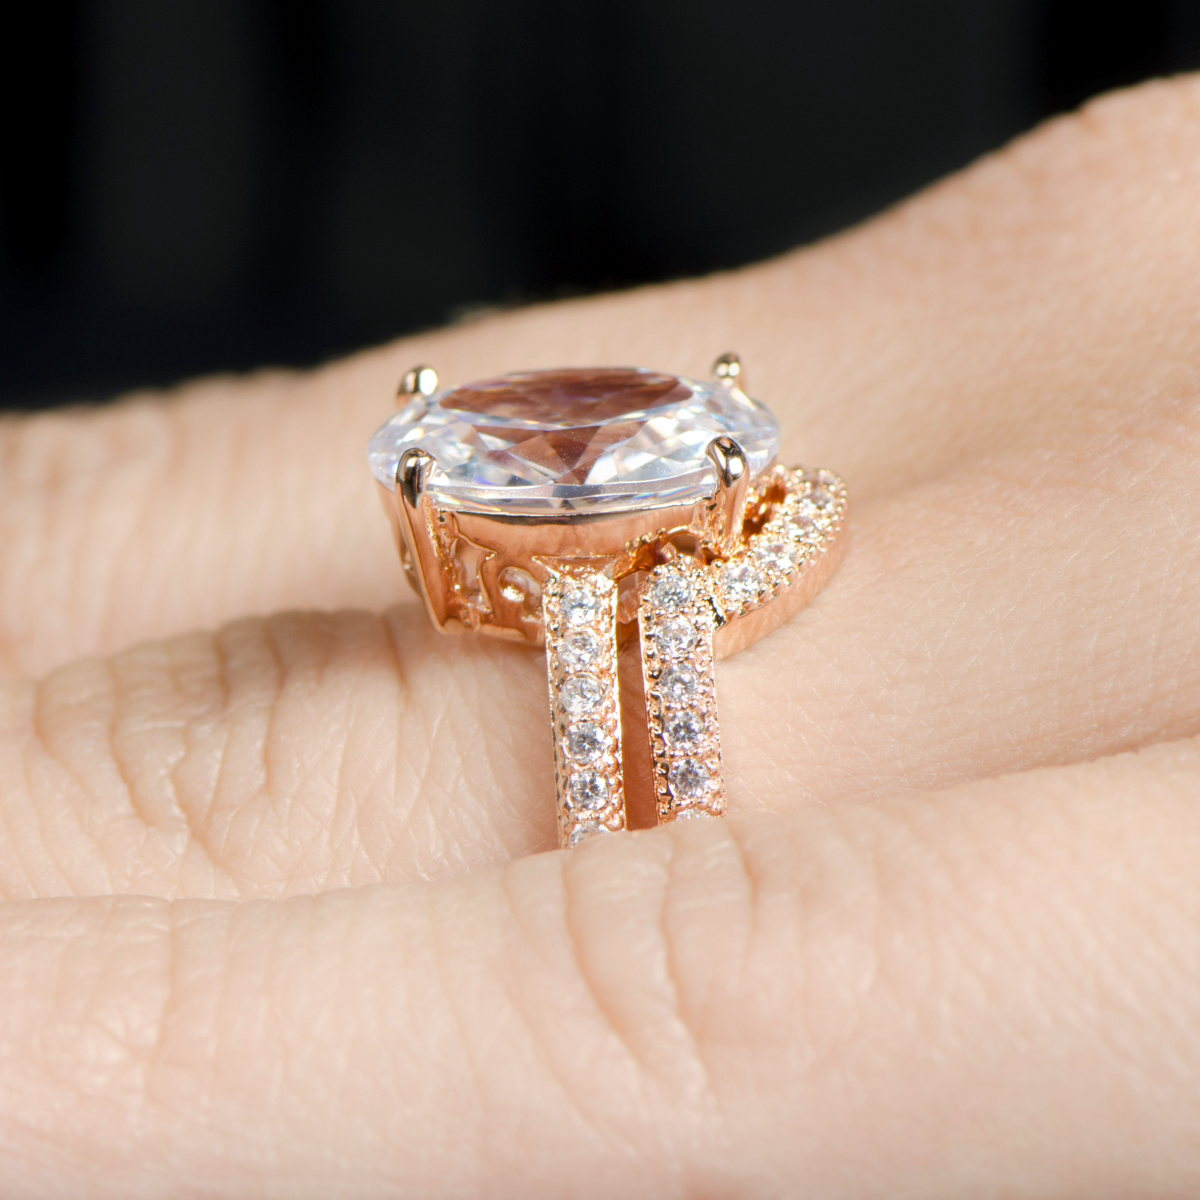 blush oval cut 5 carat rose goldtone cz wedding ring set - Rose Gold Wedding Ring Set